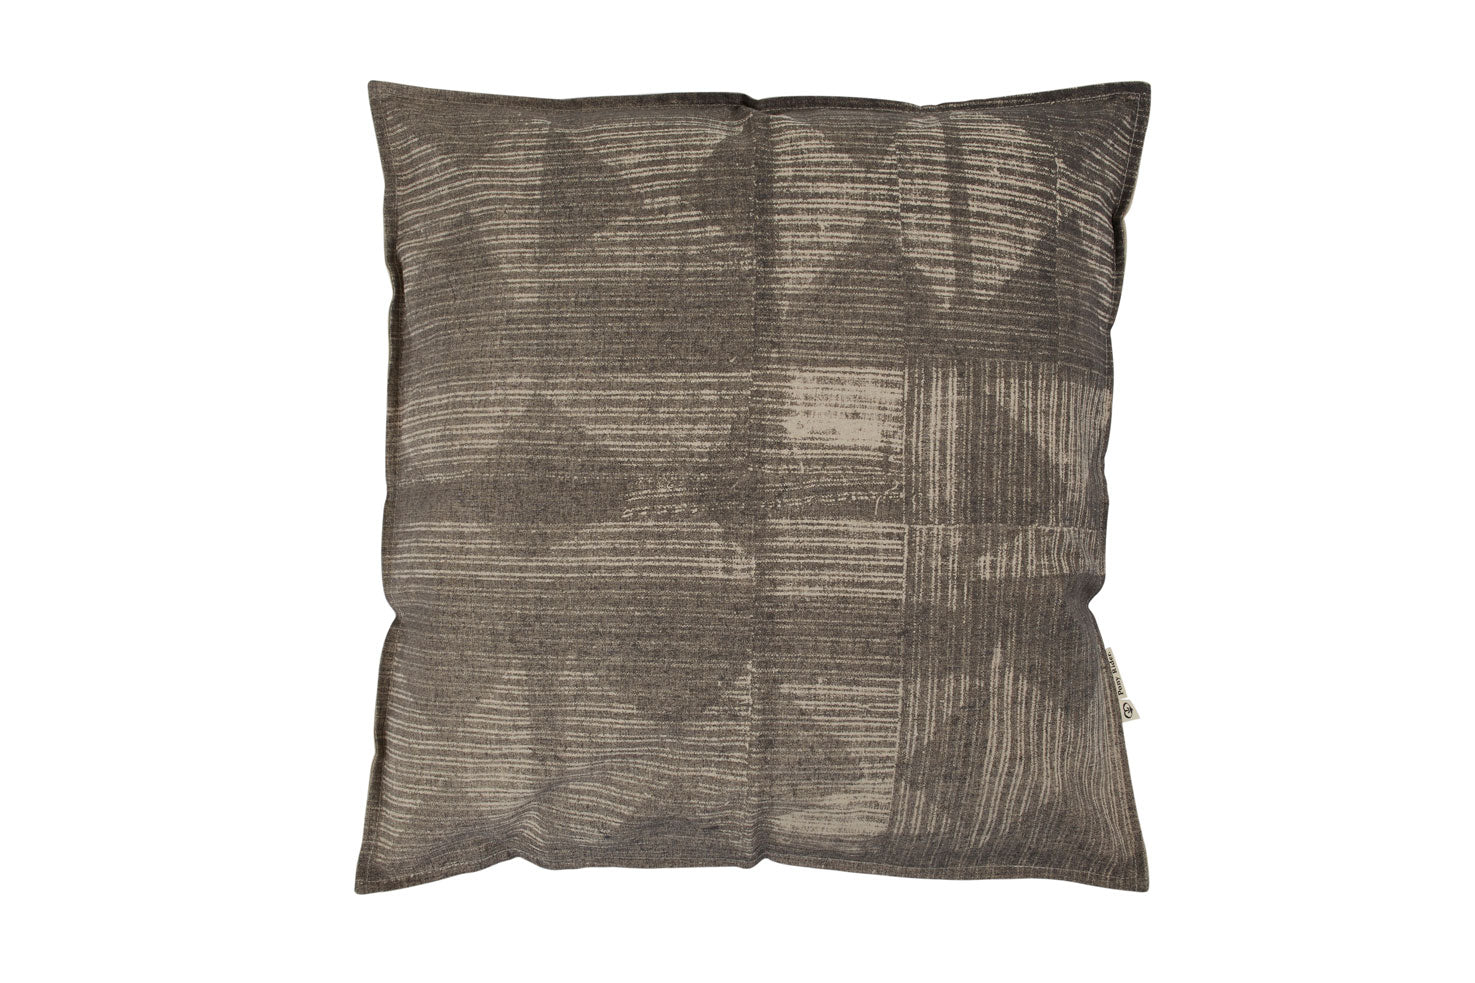 Pony Rider Patched Cushion